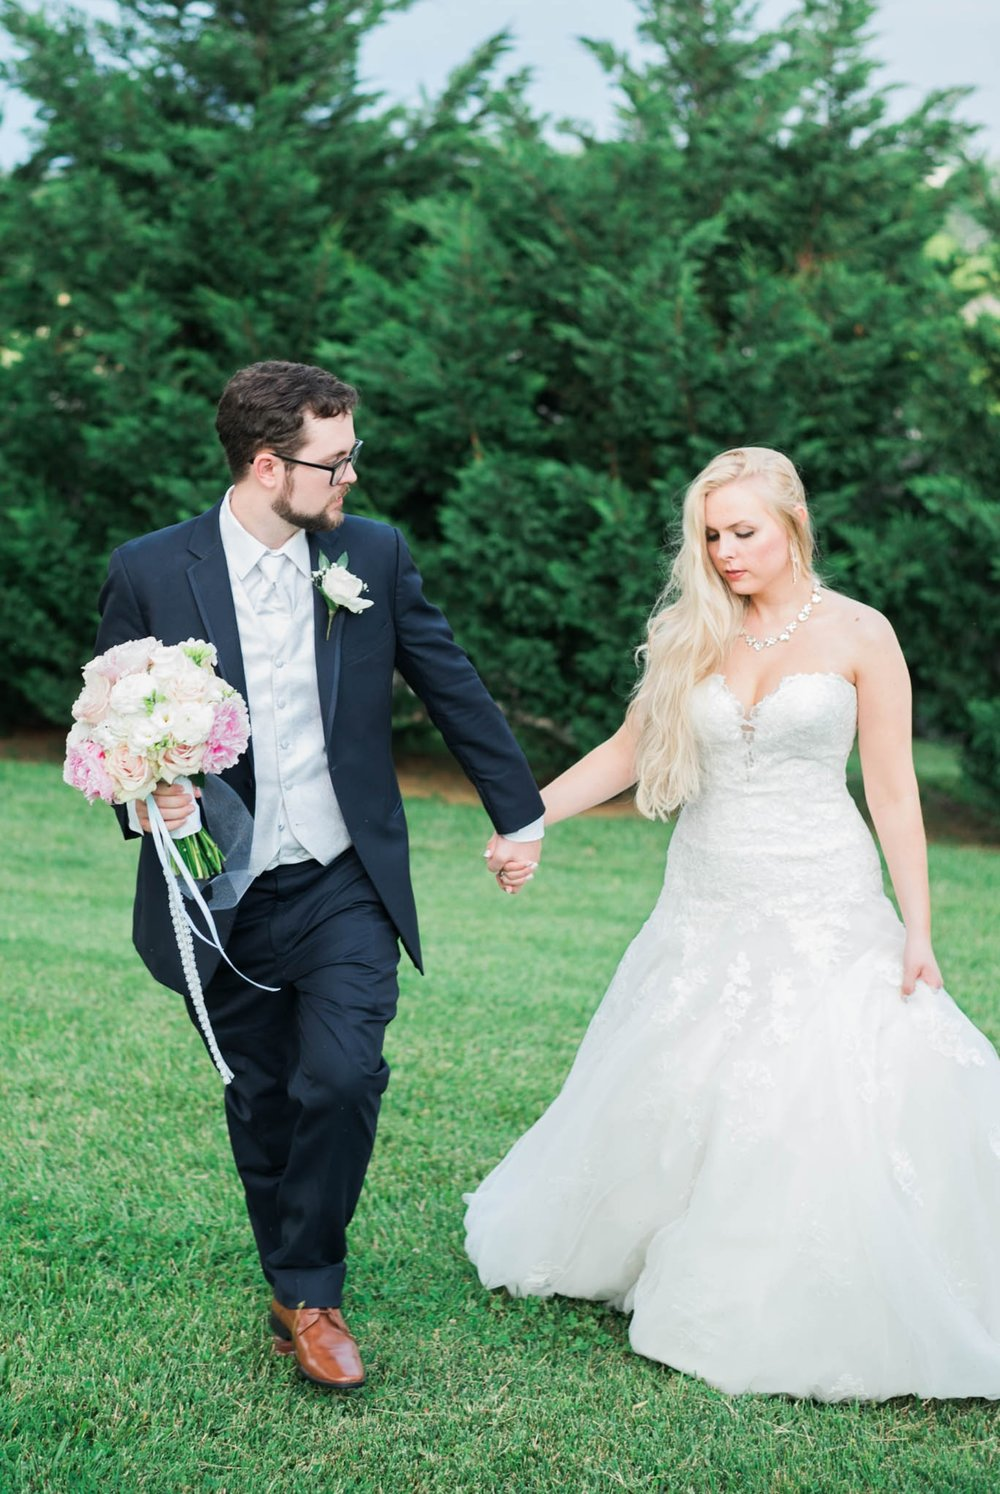 bedfordcolumns_entwinedevents_Lynchburgweddingphotographer_virginiaweddingphotographer_tarahlaunce 27.jpg